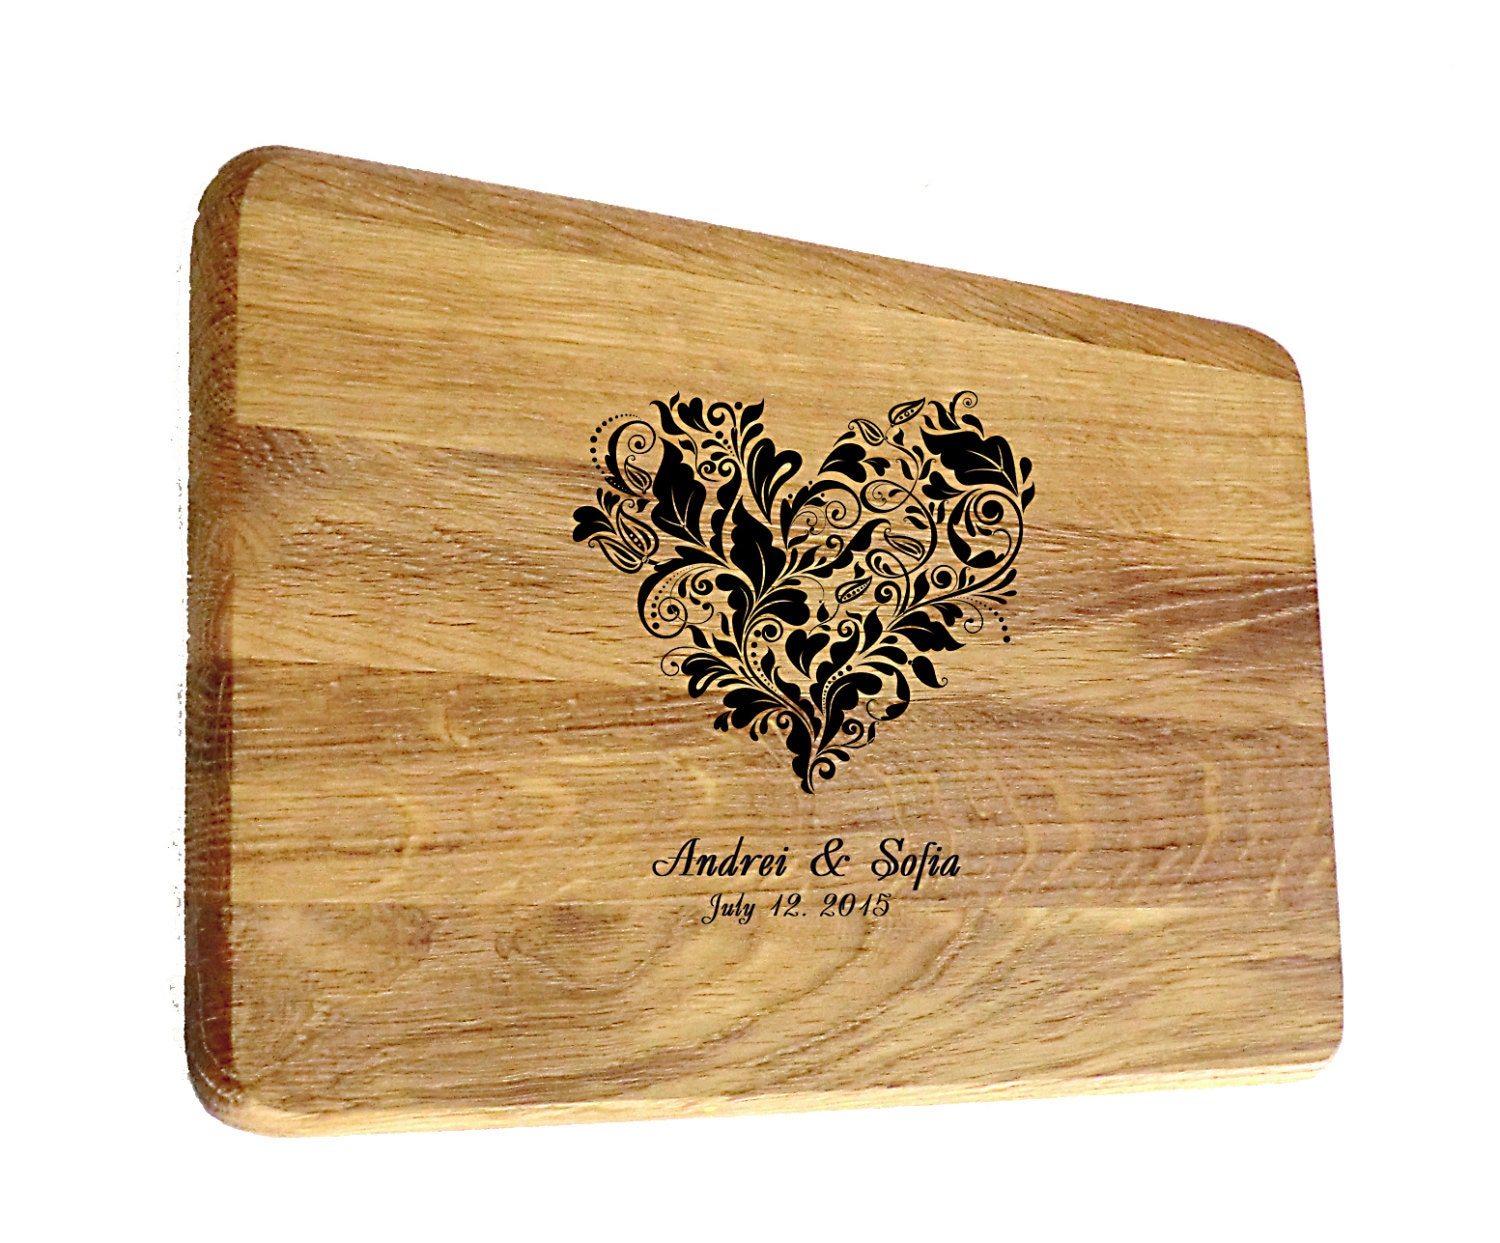 Wedding Gift Cutting Board: Cutting Board Wedding Gift Personalized Cutting Boards Custom